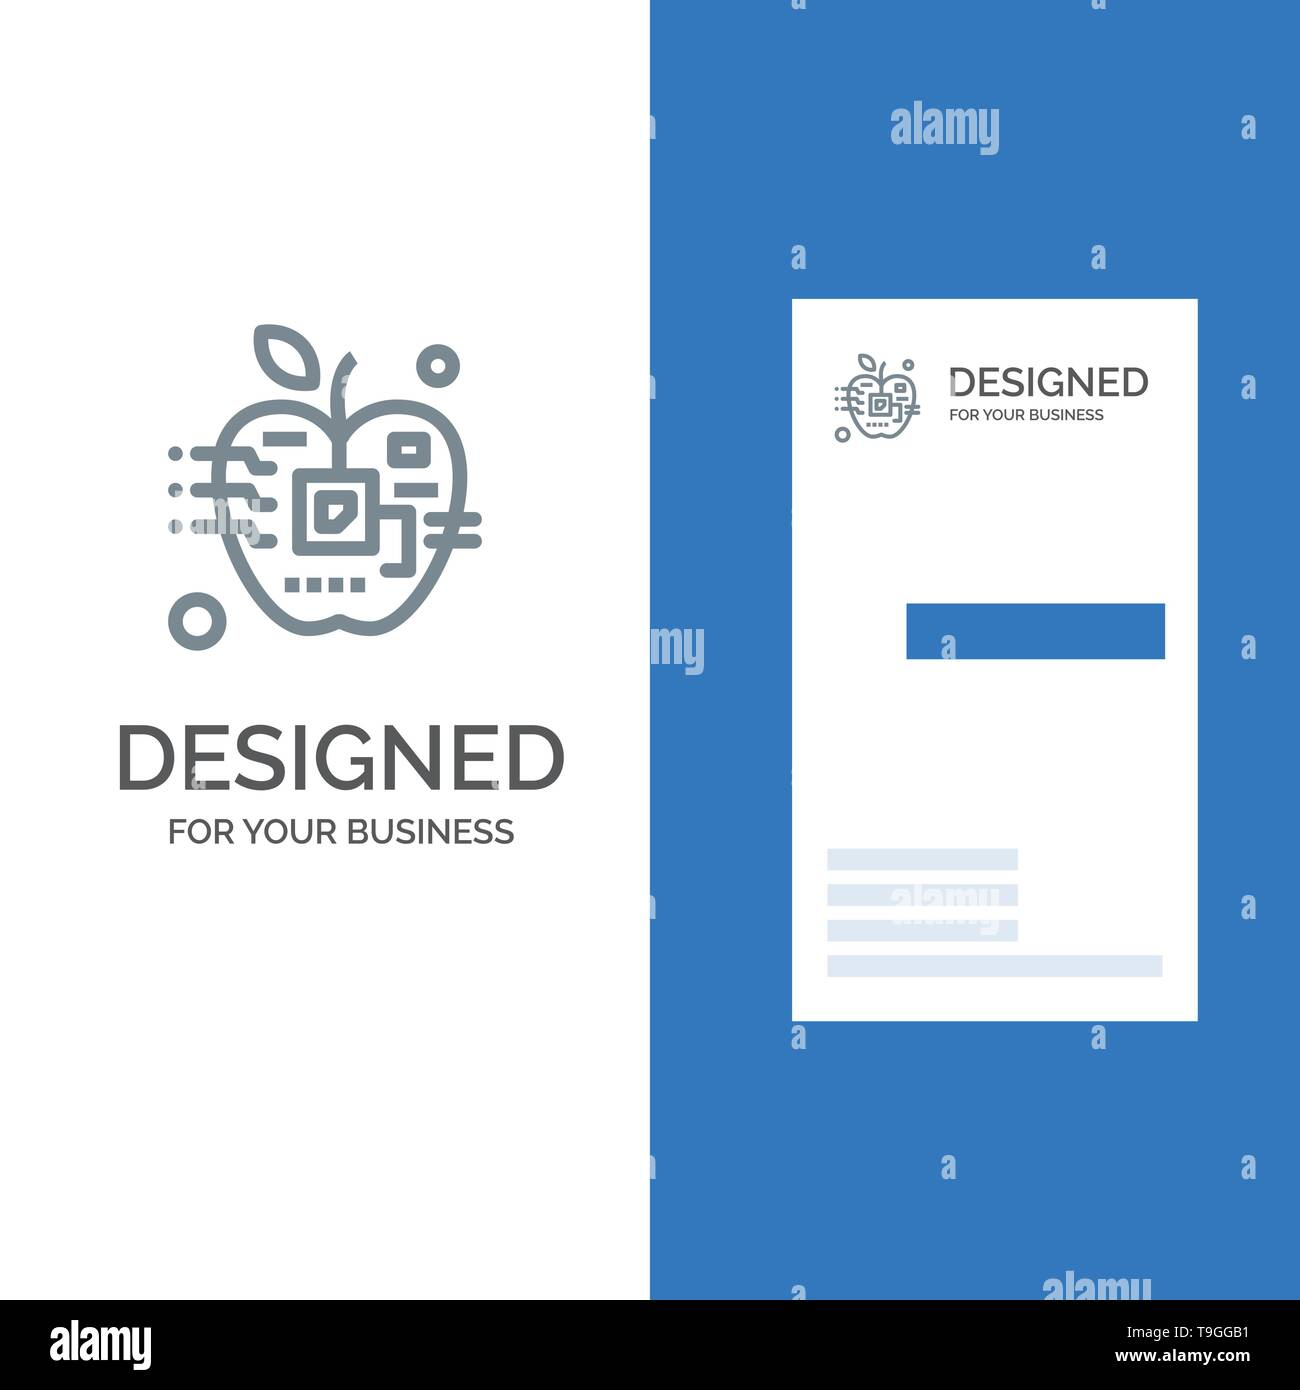 Apple, Artificial, Biology, Digital, Electronic Grey Logo Design and Business Card Template - Stock Image